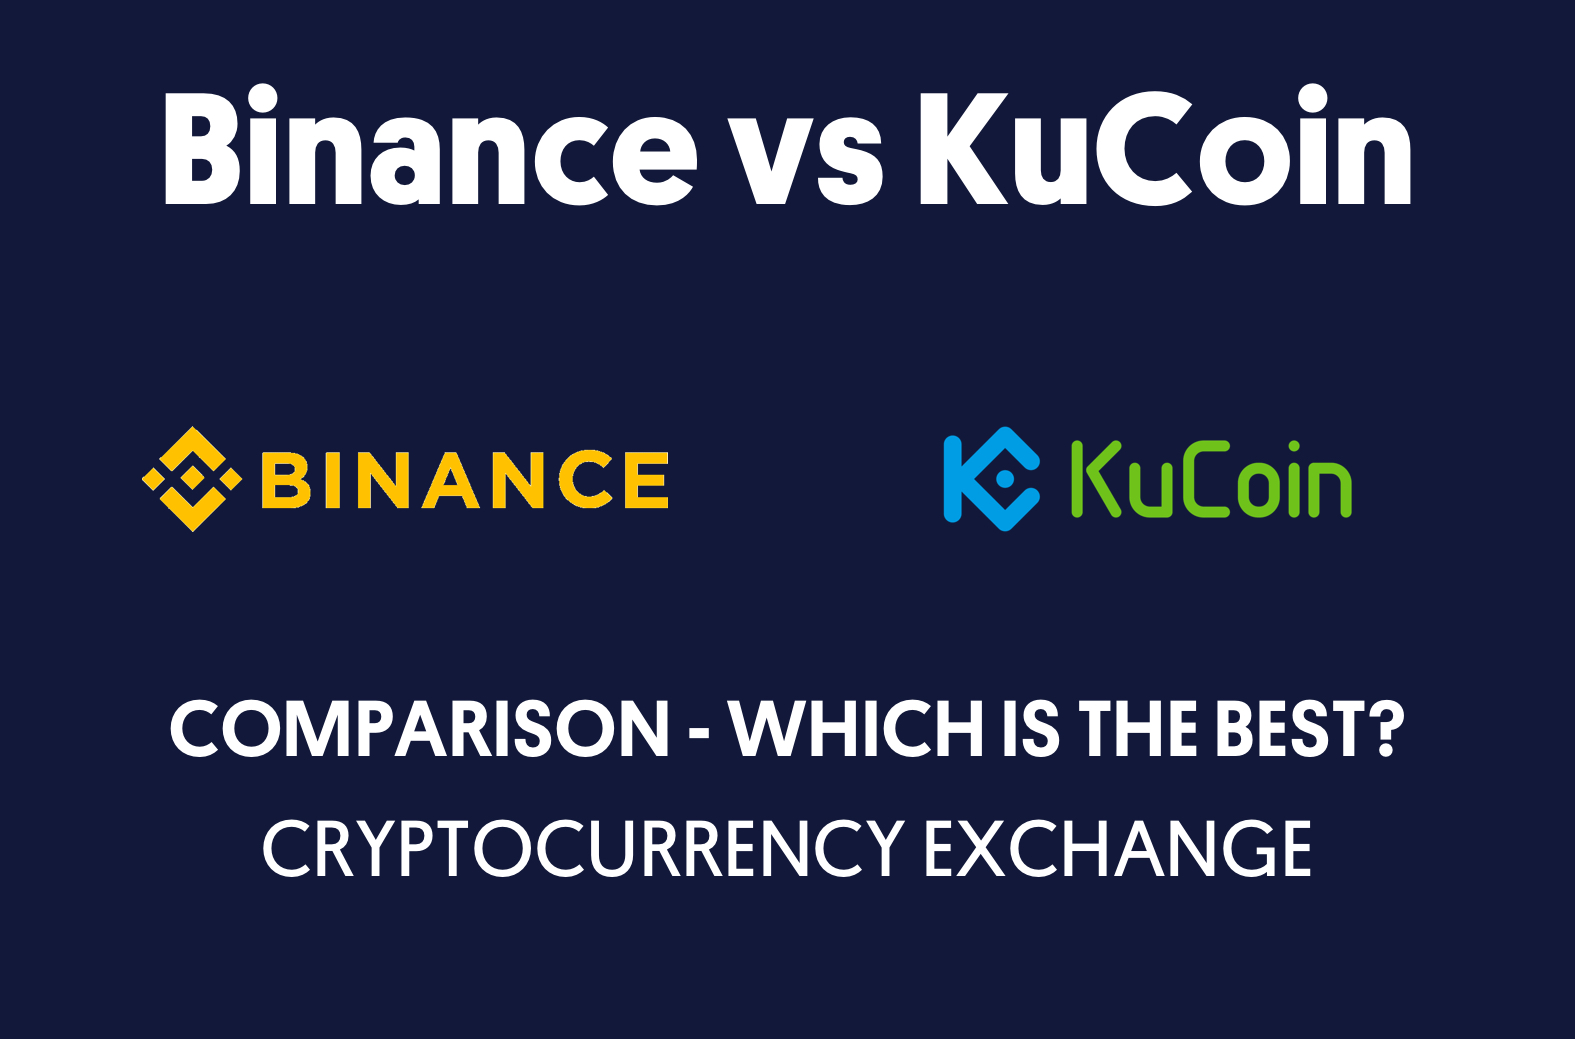 Binance vs KuCoin - which is the best cryptocurrency exchange?